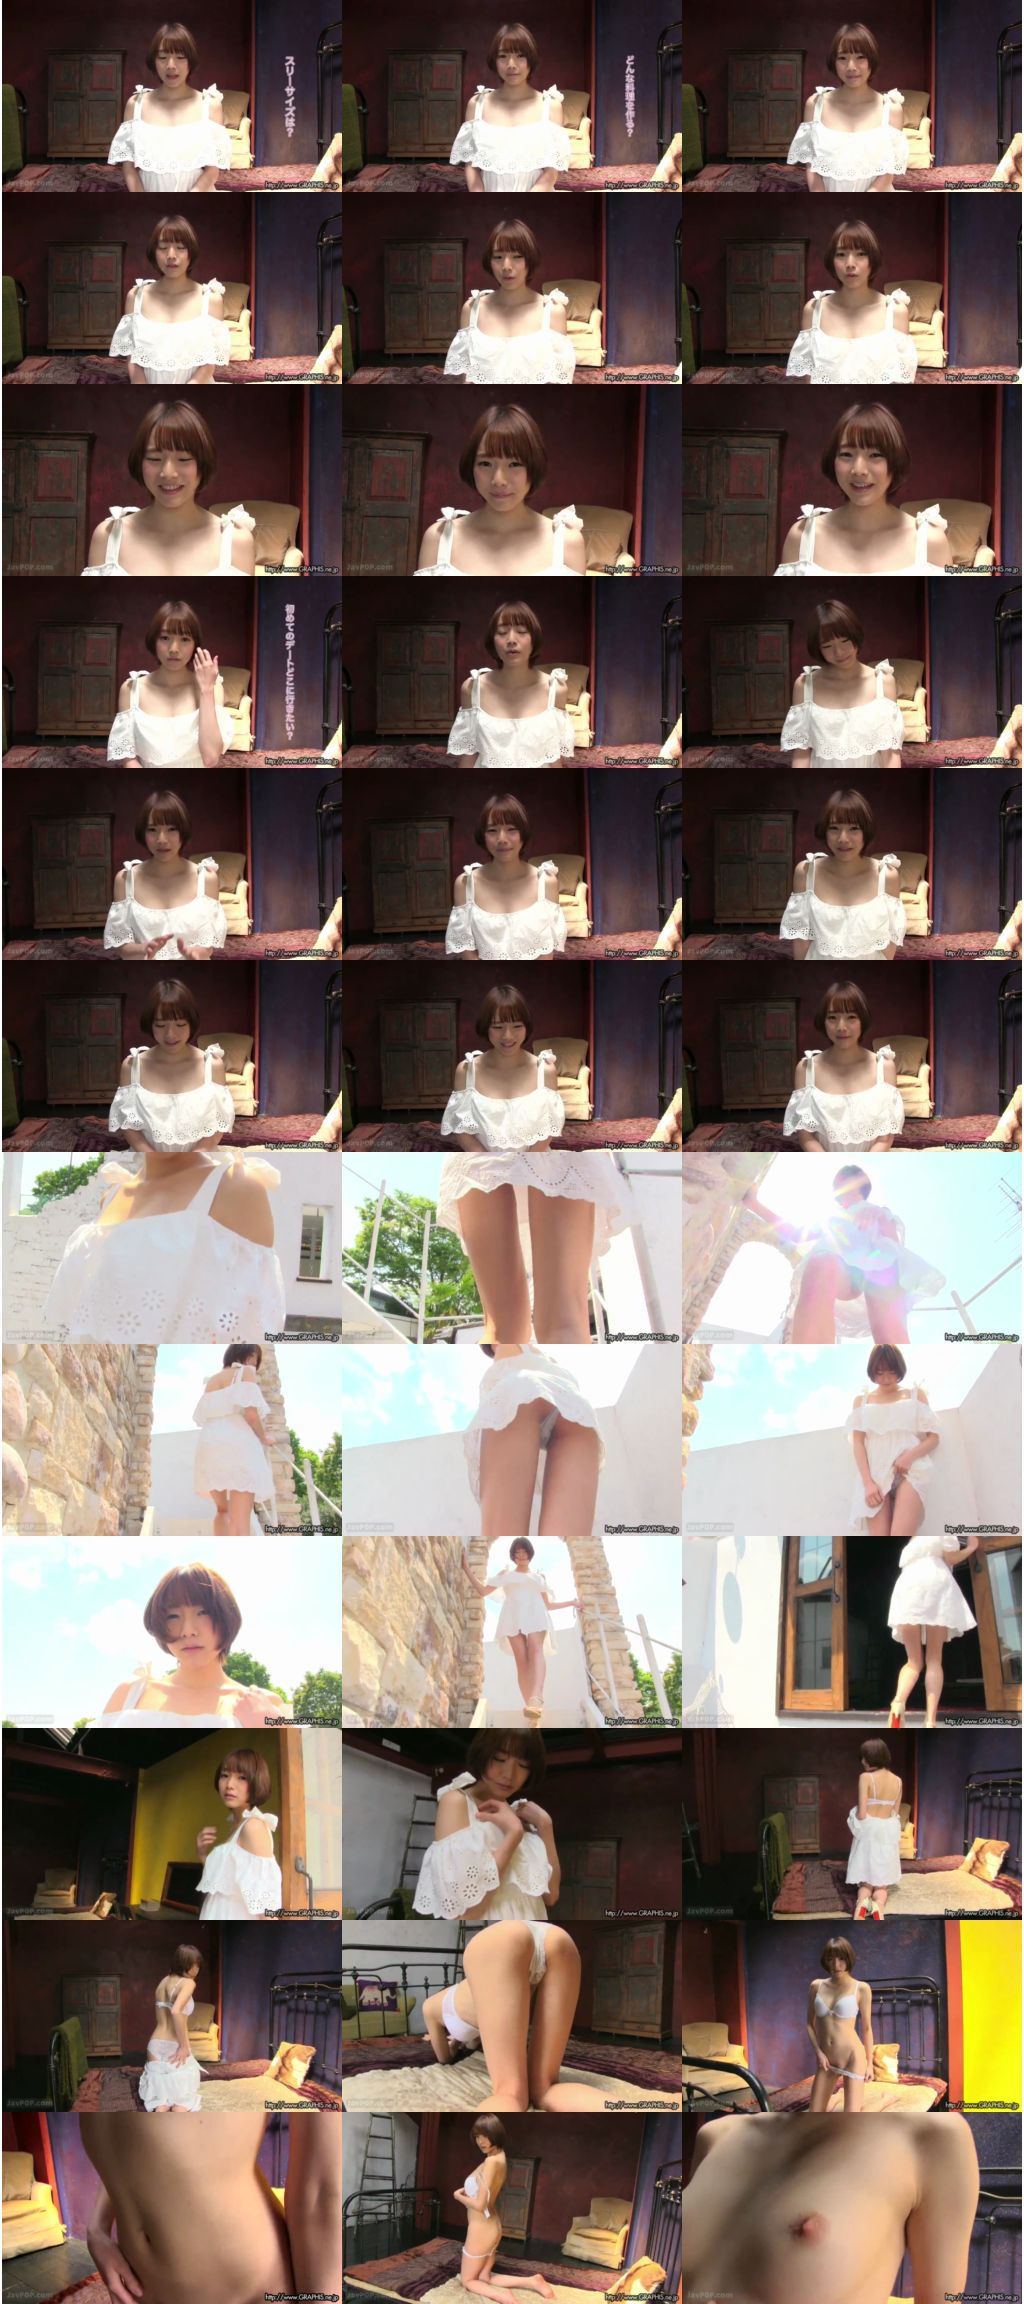 graphis ayane 0 s - [Graphis-ayane] 初脱ぎ娘 涼川絢音 Video